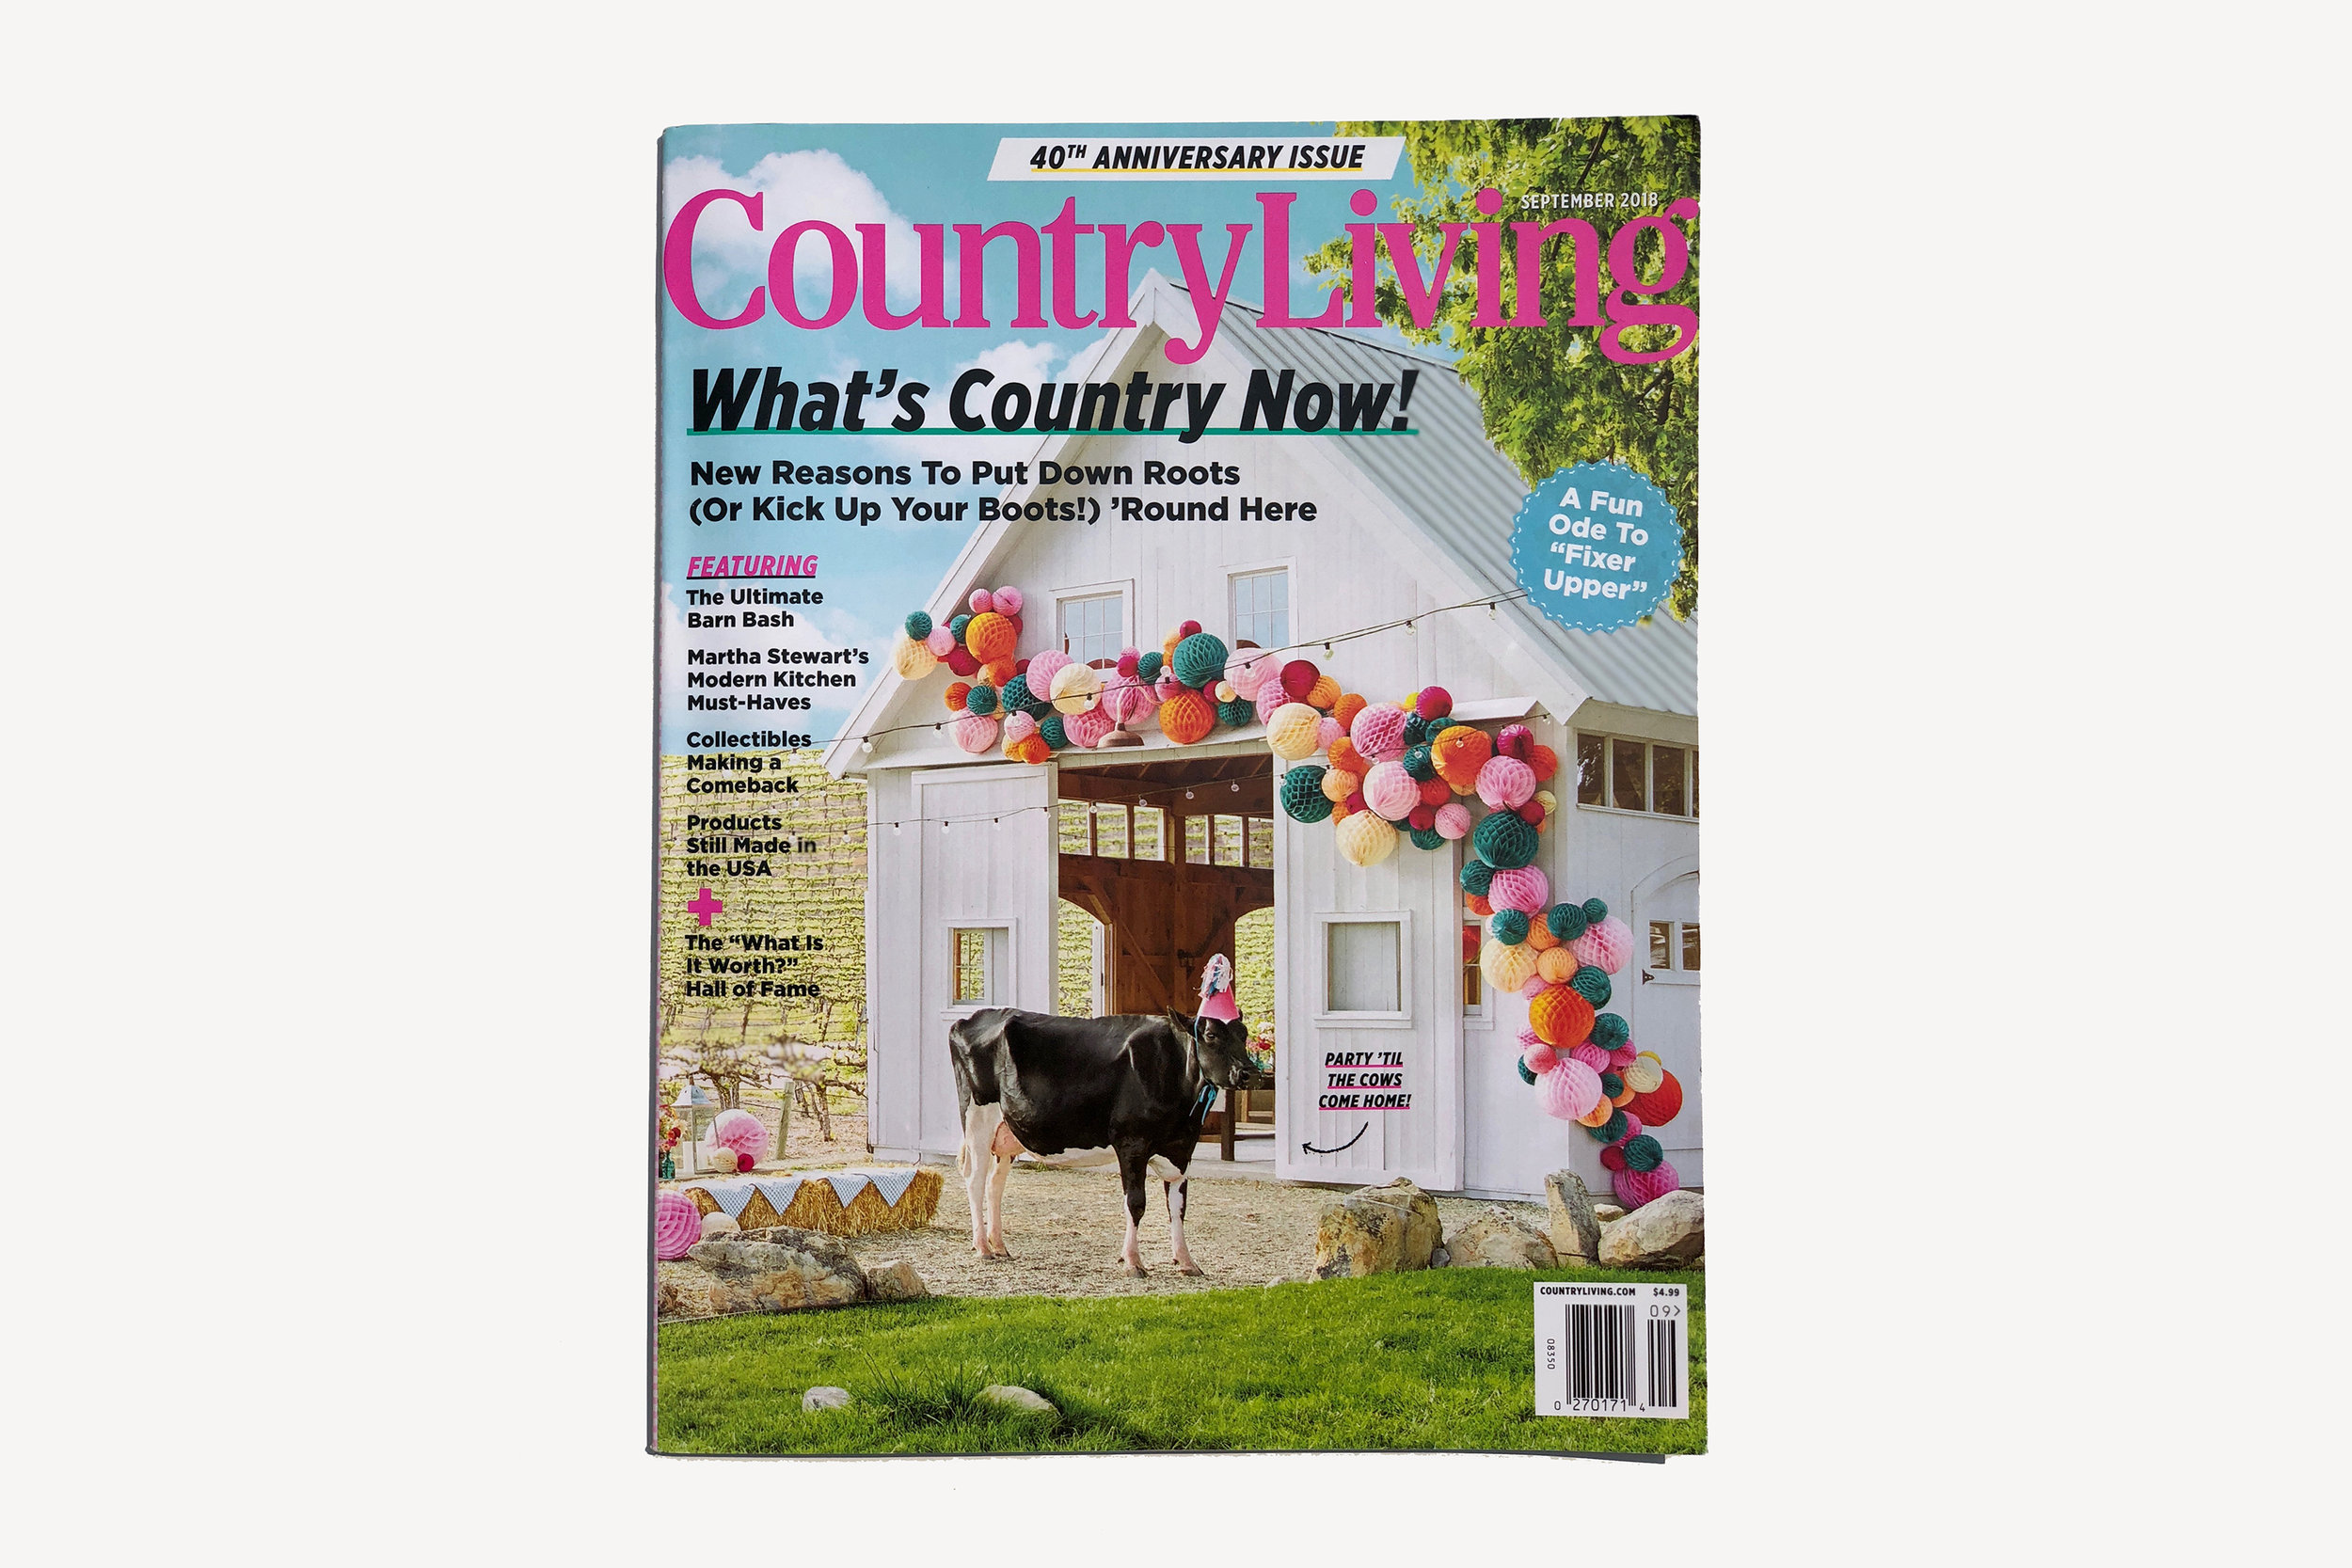 Country Living - 40th Anniversary Issue